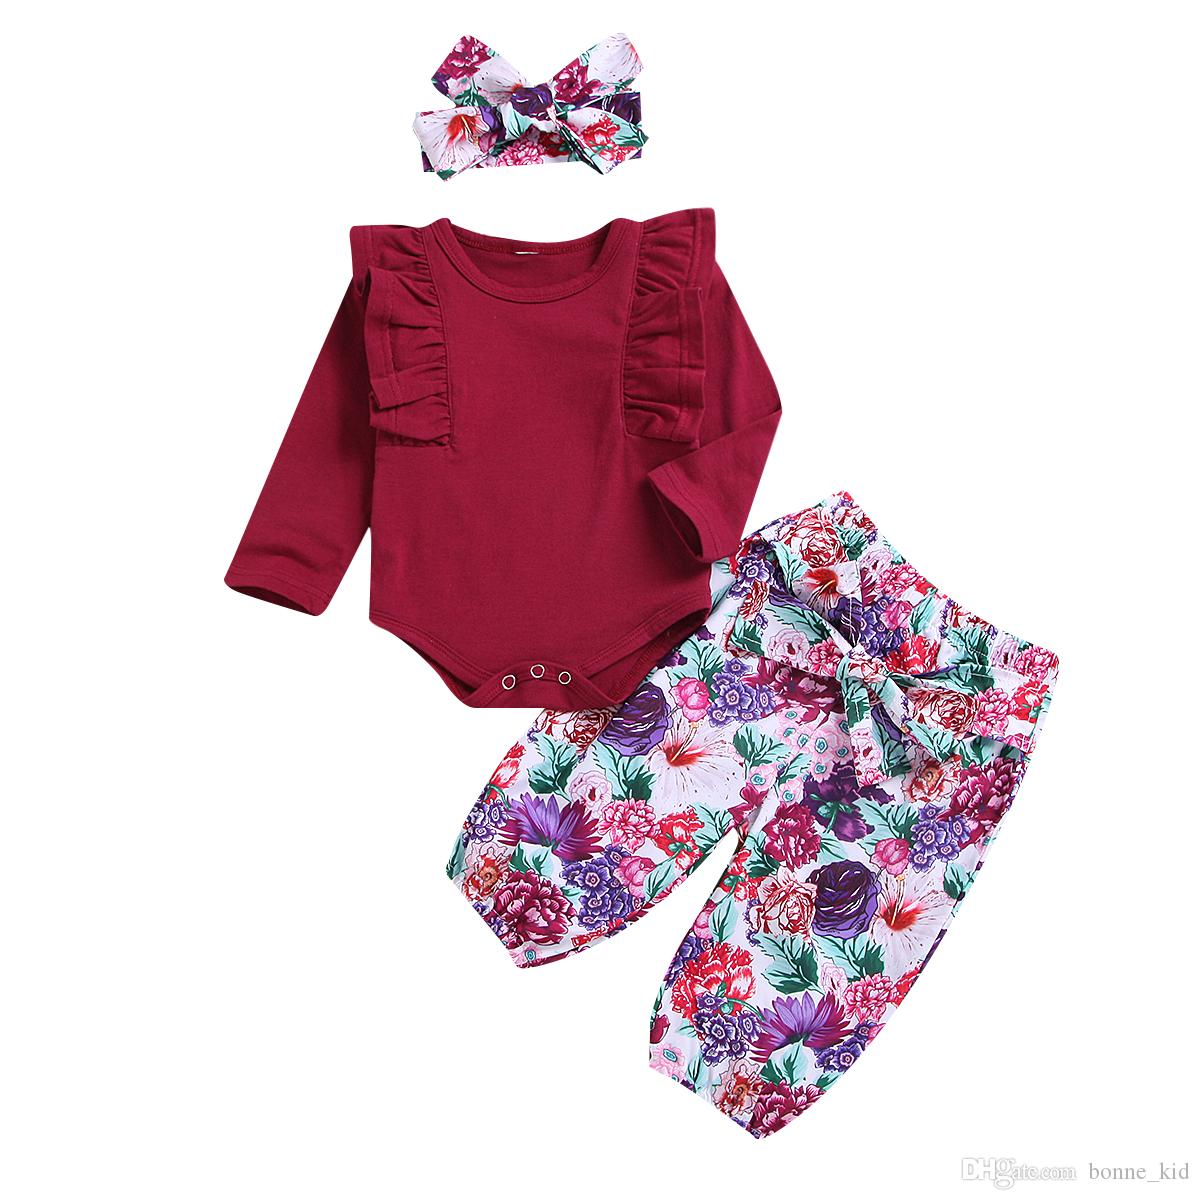 Girls' Baby Clothing Infant Baby Girls Long Sleeve Floral Print Jumpsuit Romper+headband Outfits Classic New Arrival High Quality Customers First